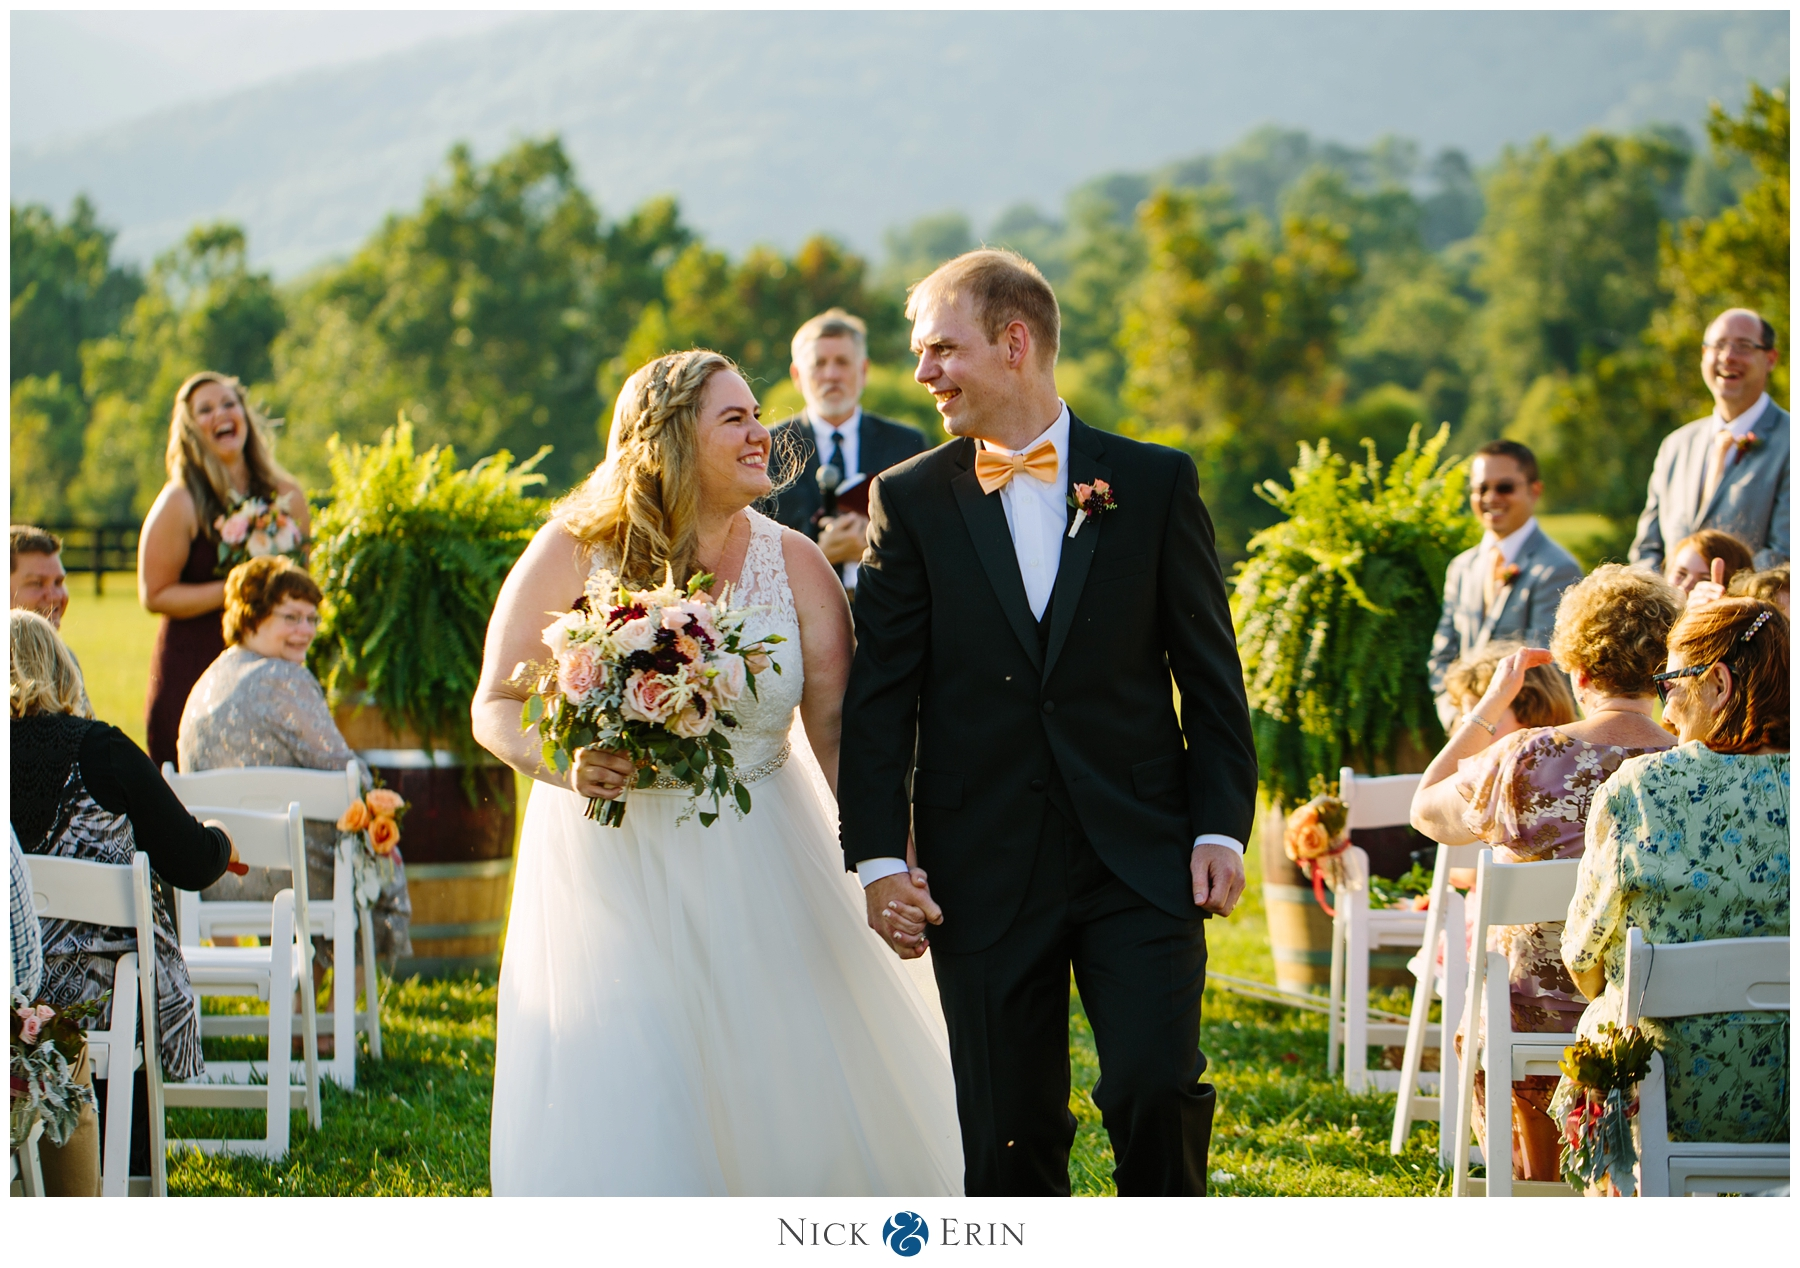 Donner_Photography_Charlottesville Virginia Wedding_Jennifer & Chris_0046